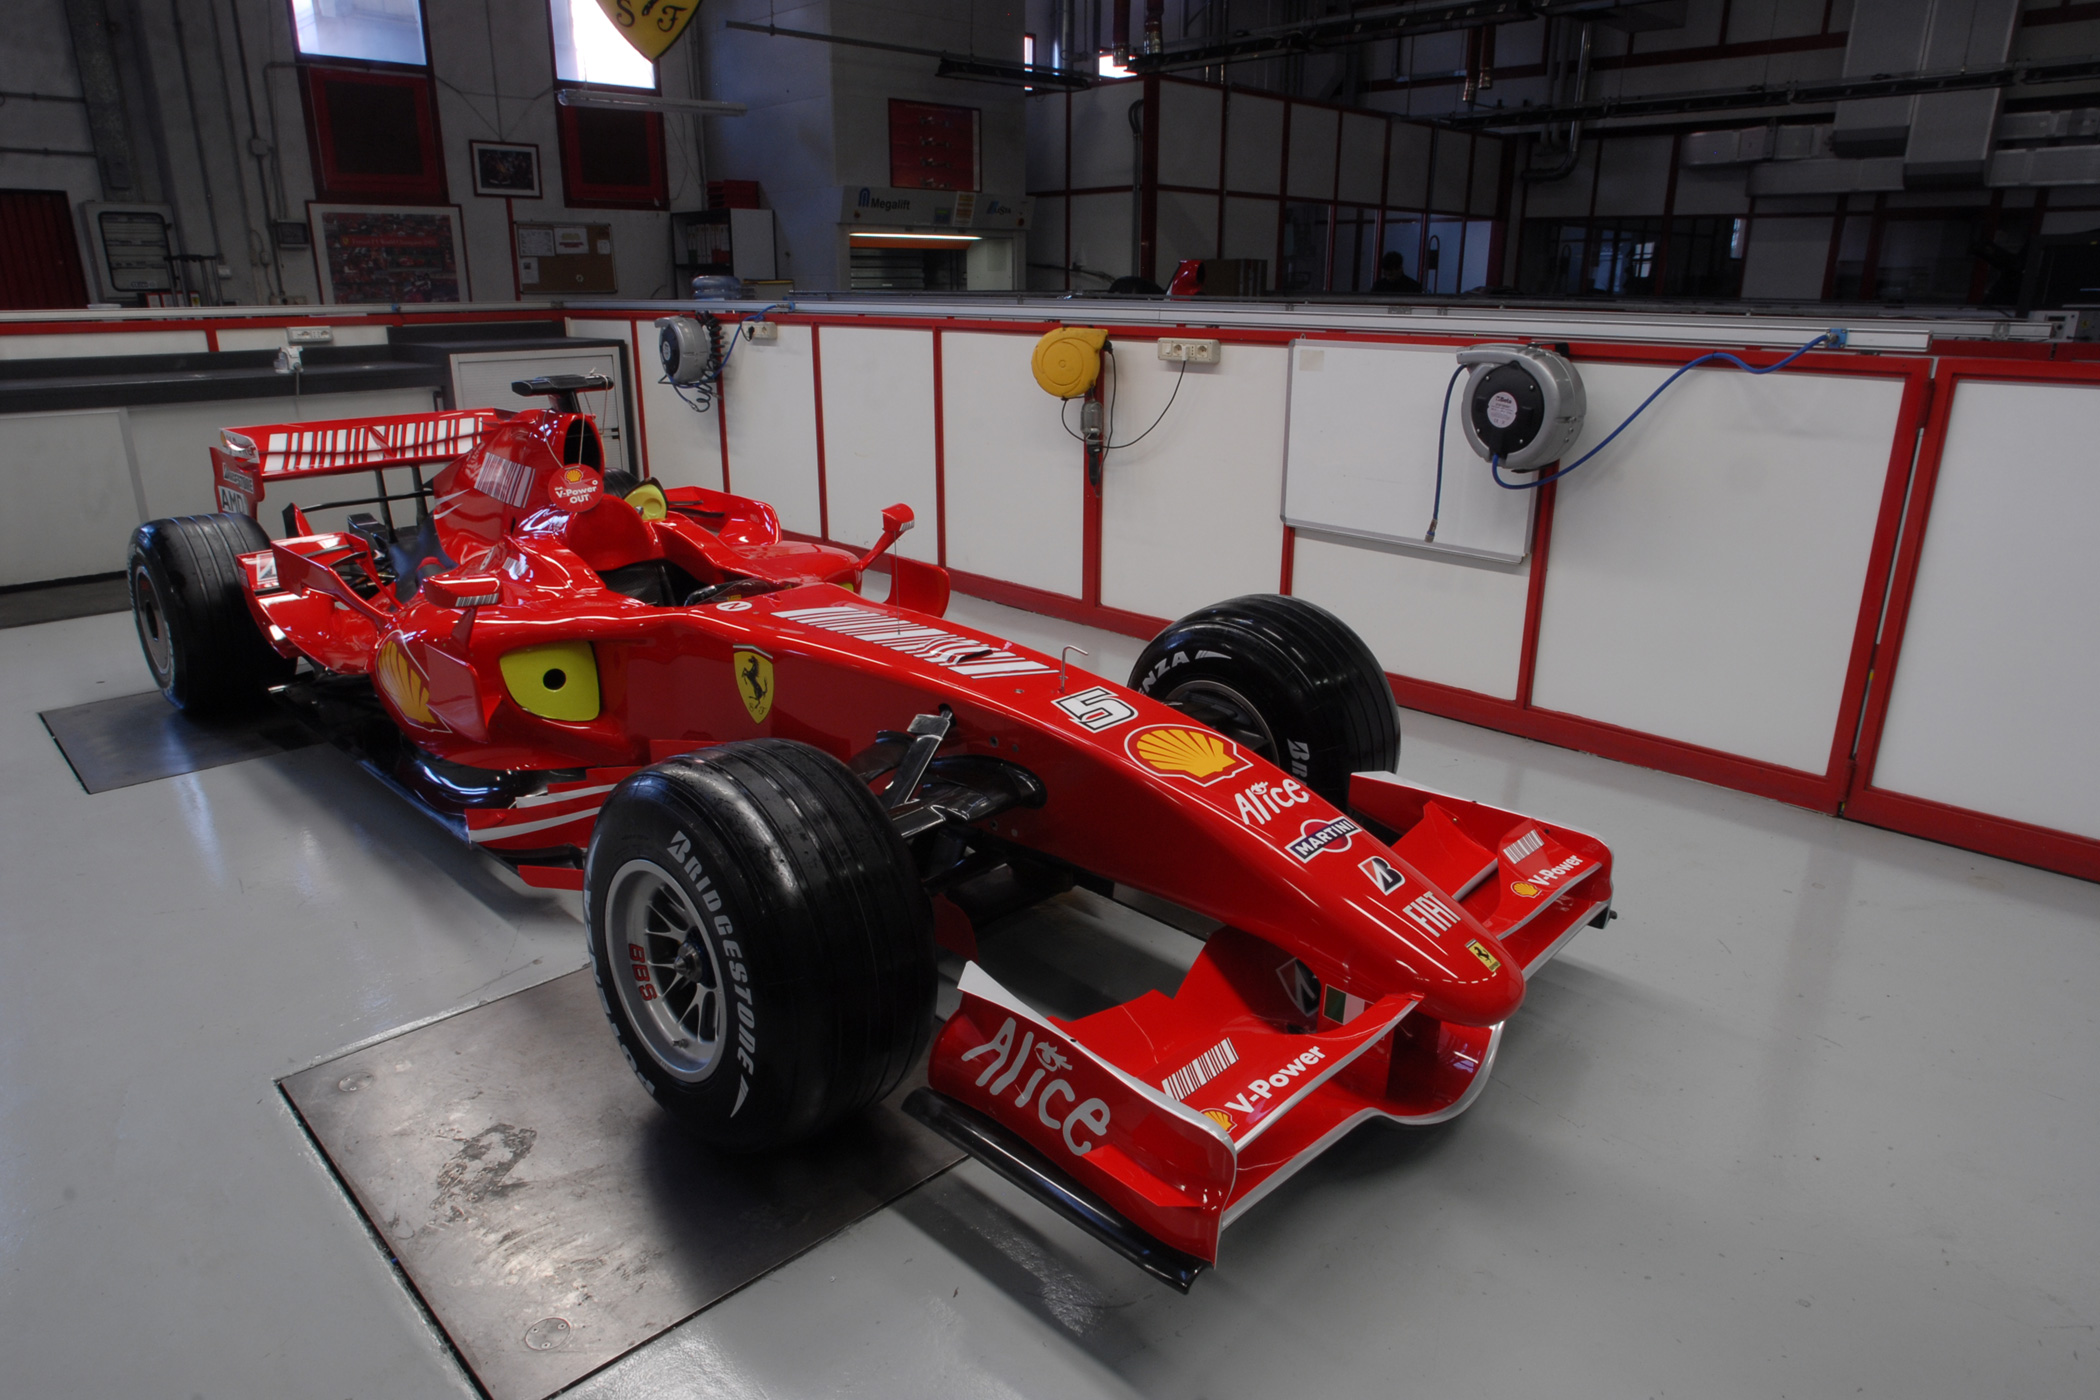 2007 ferrari f2007 f1 - forza-rossa.over-blog